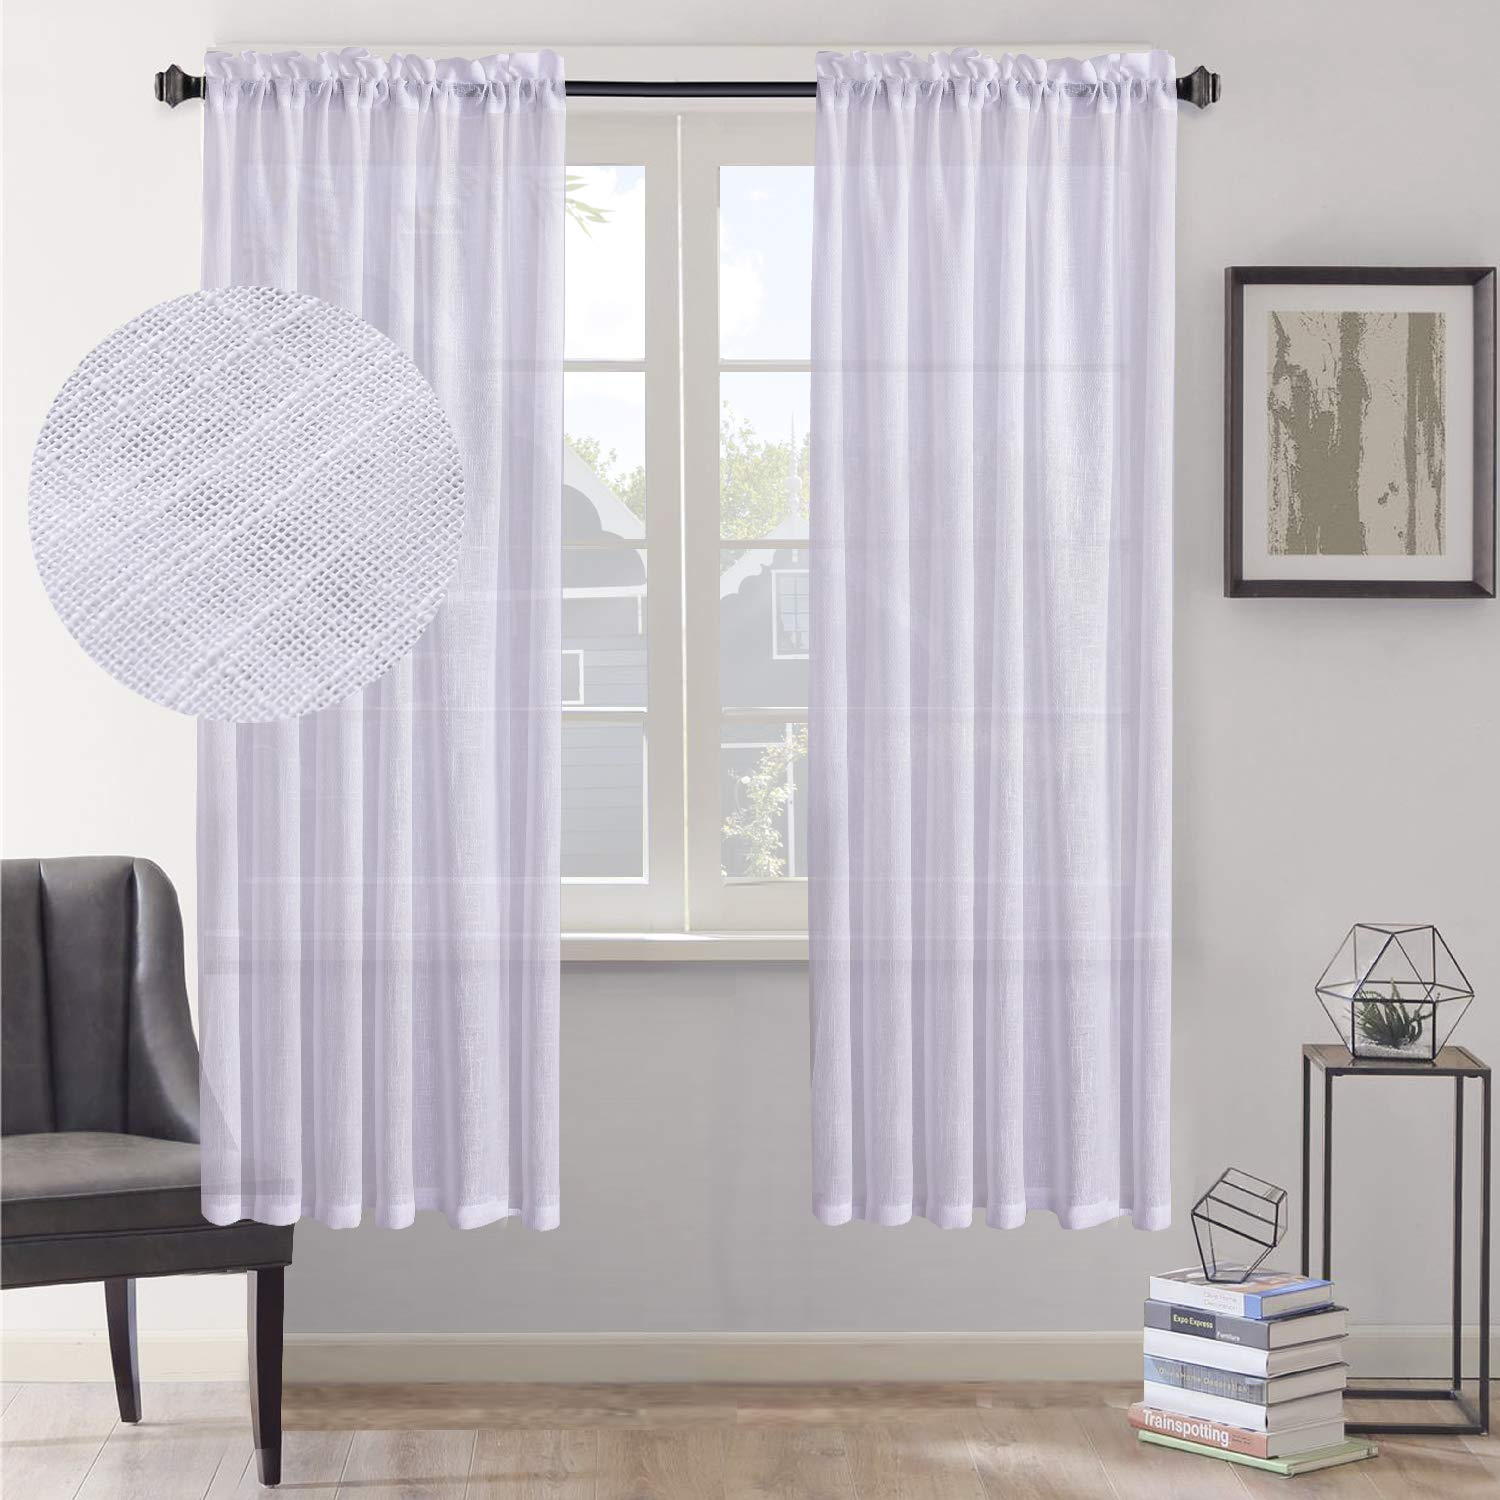 Set of 2 30 x 40 inch HOME BRILLIANT Premium Linen Sheer French Door Curtains Burlap Window Drapery Panels for Privacy